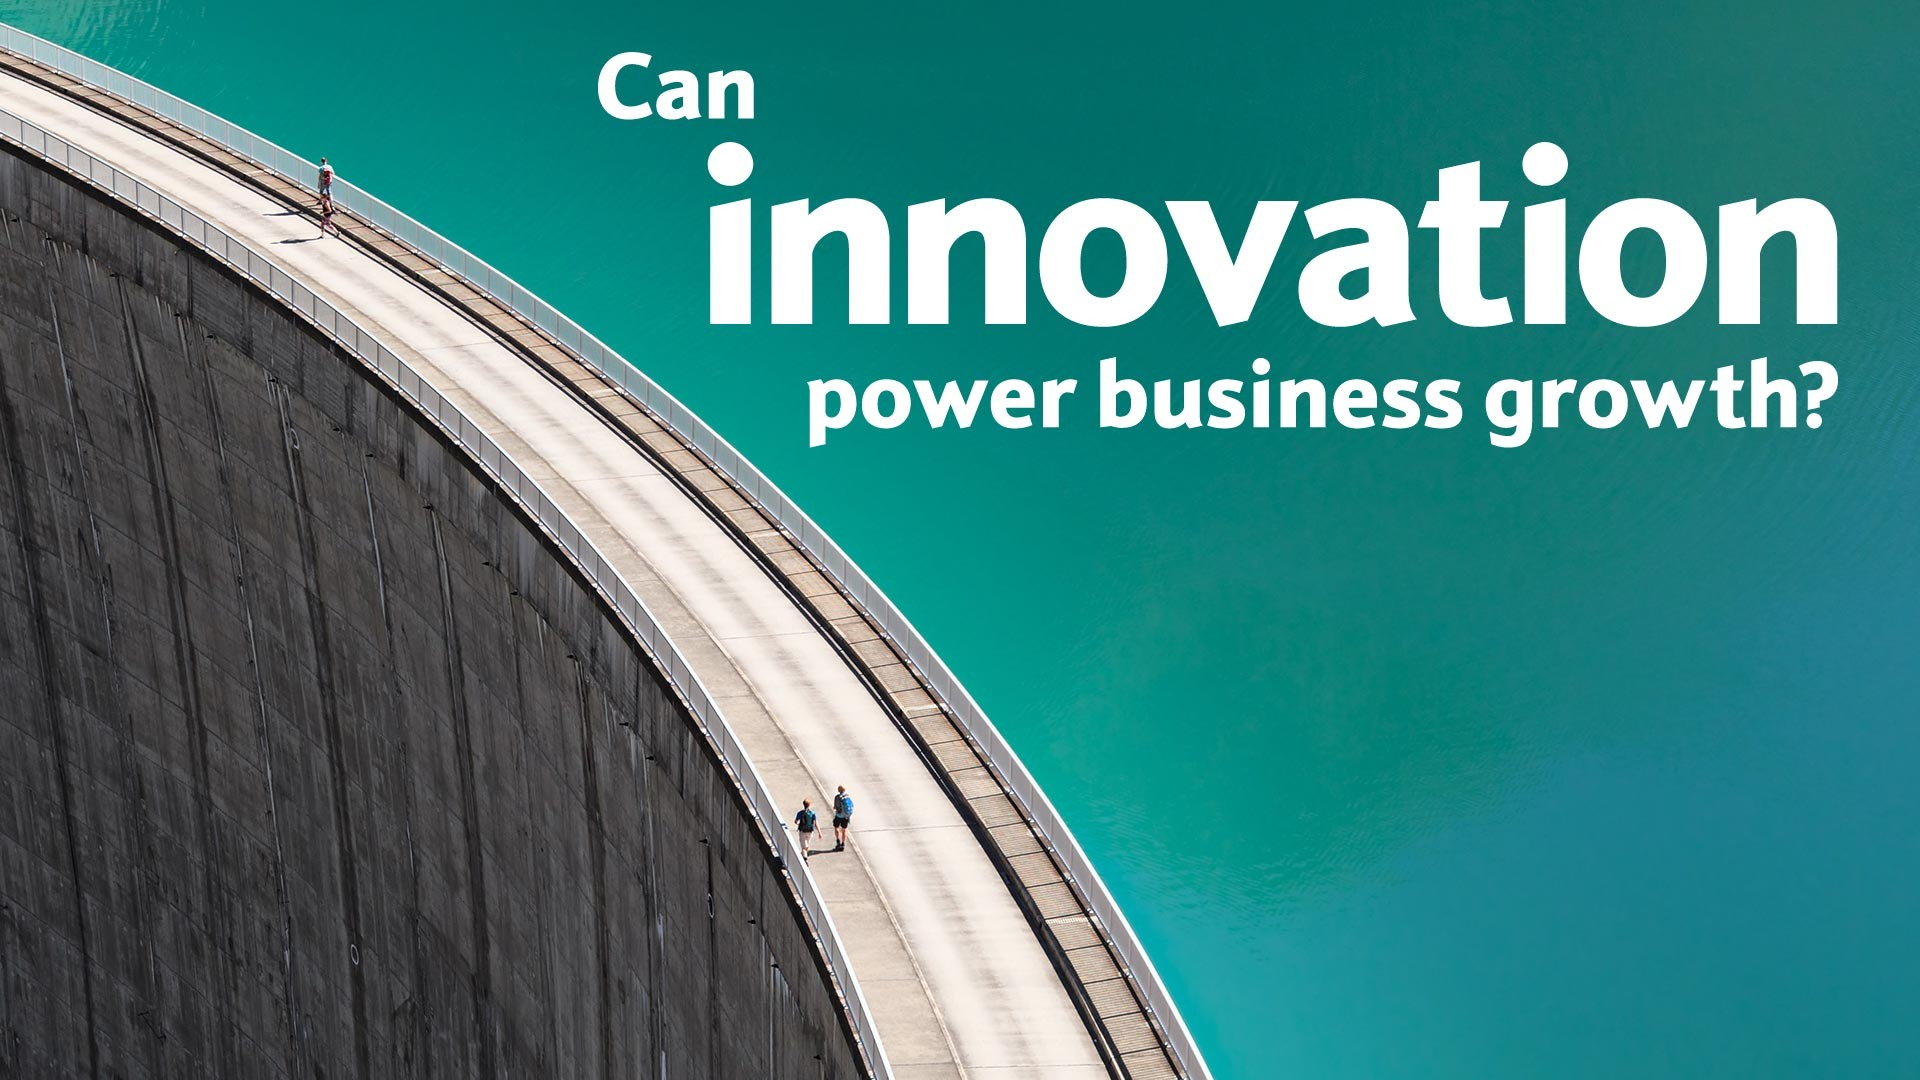 Can innovation power business growth?